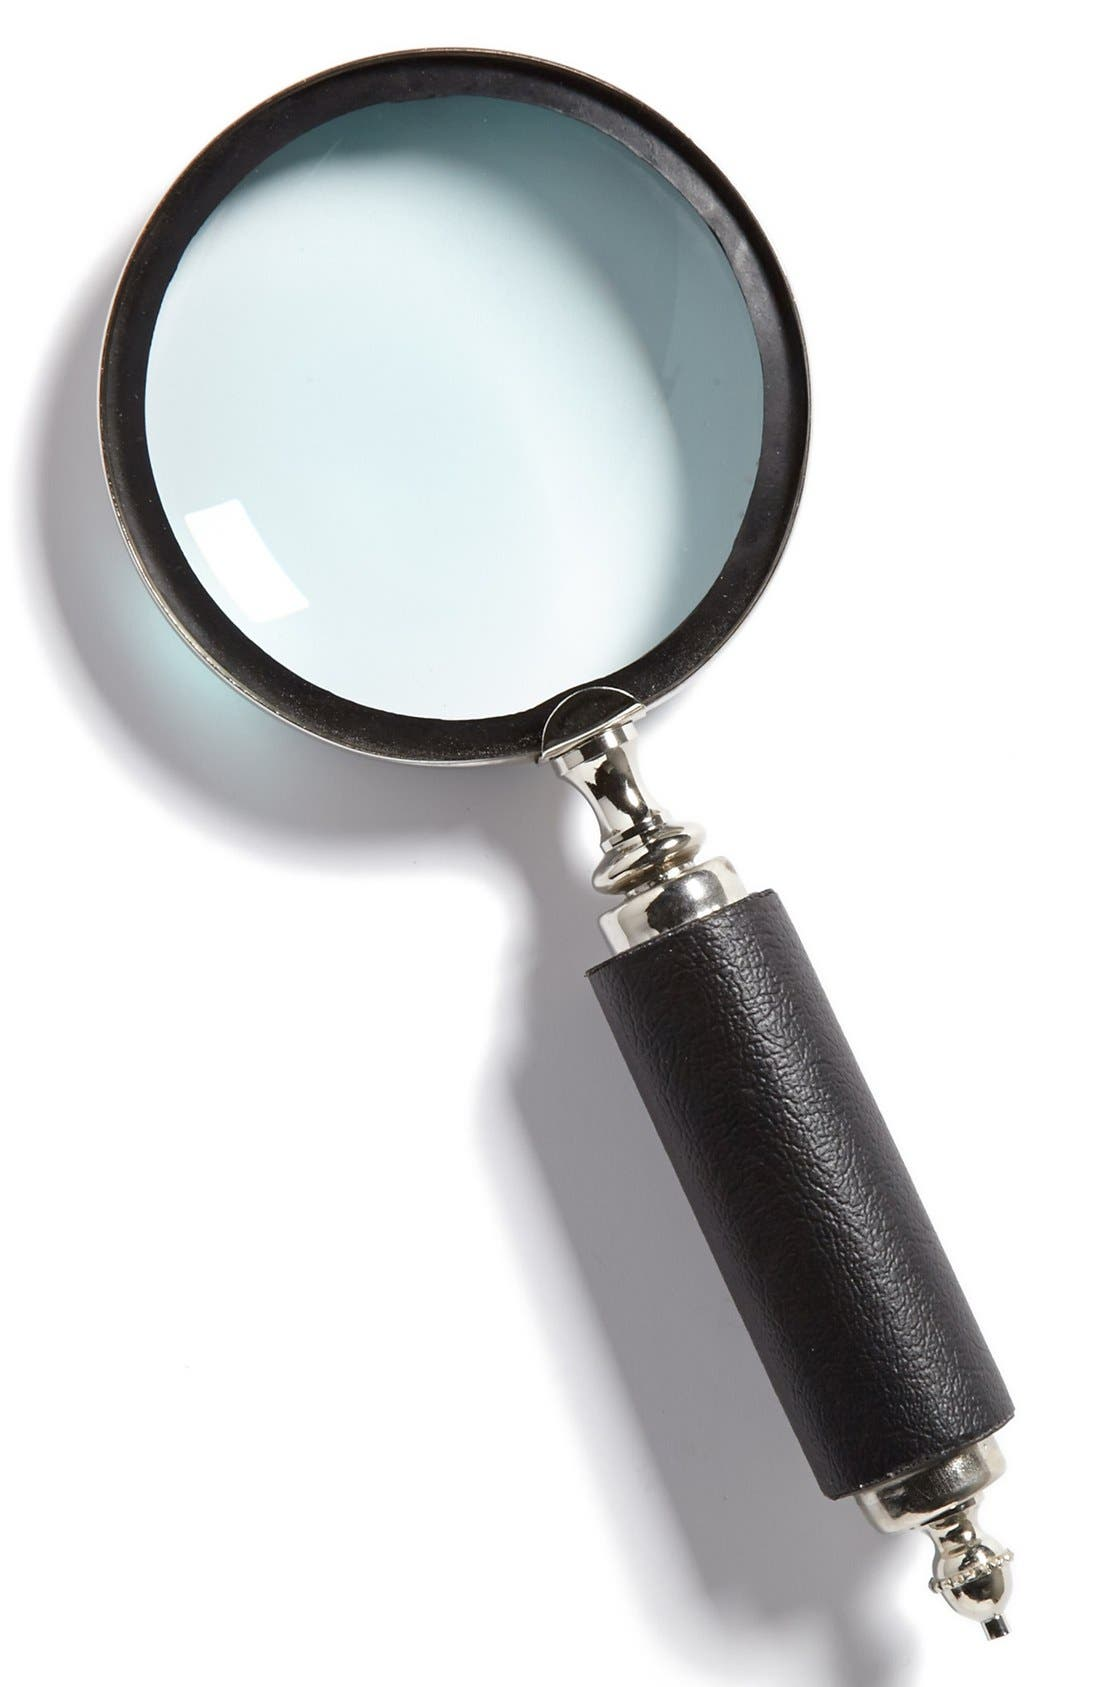 Main Image - Import Collection Blackened Horn Handle Magnifying Glass